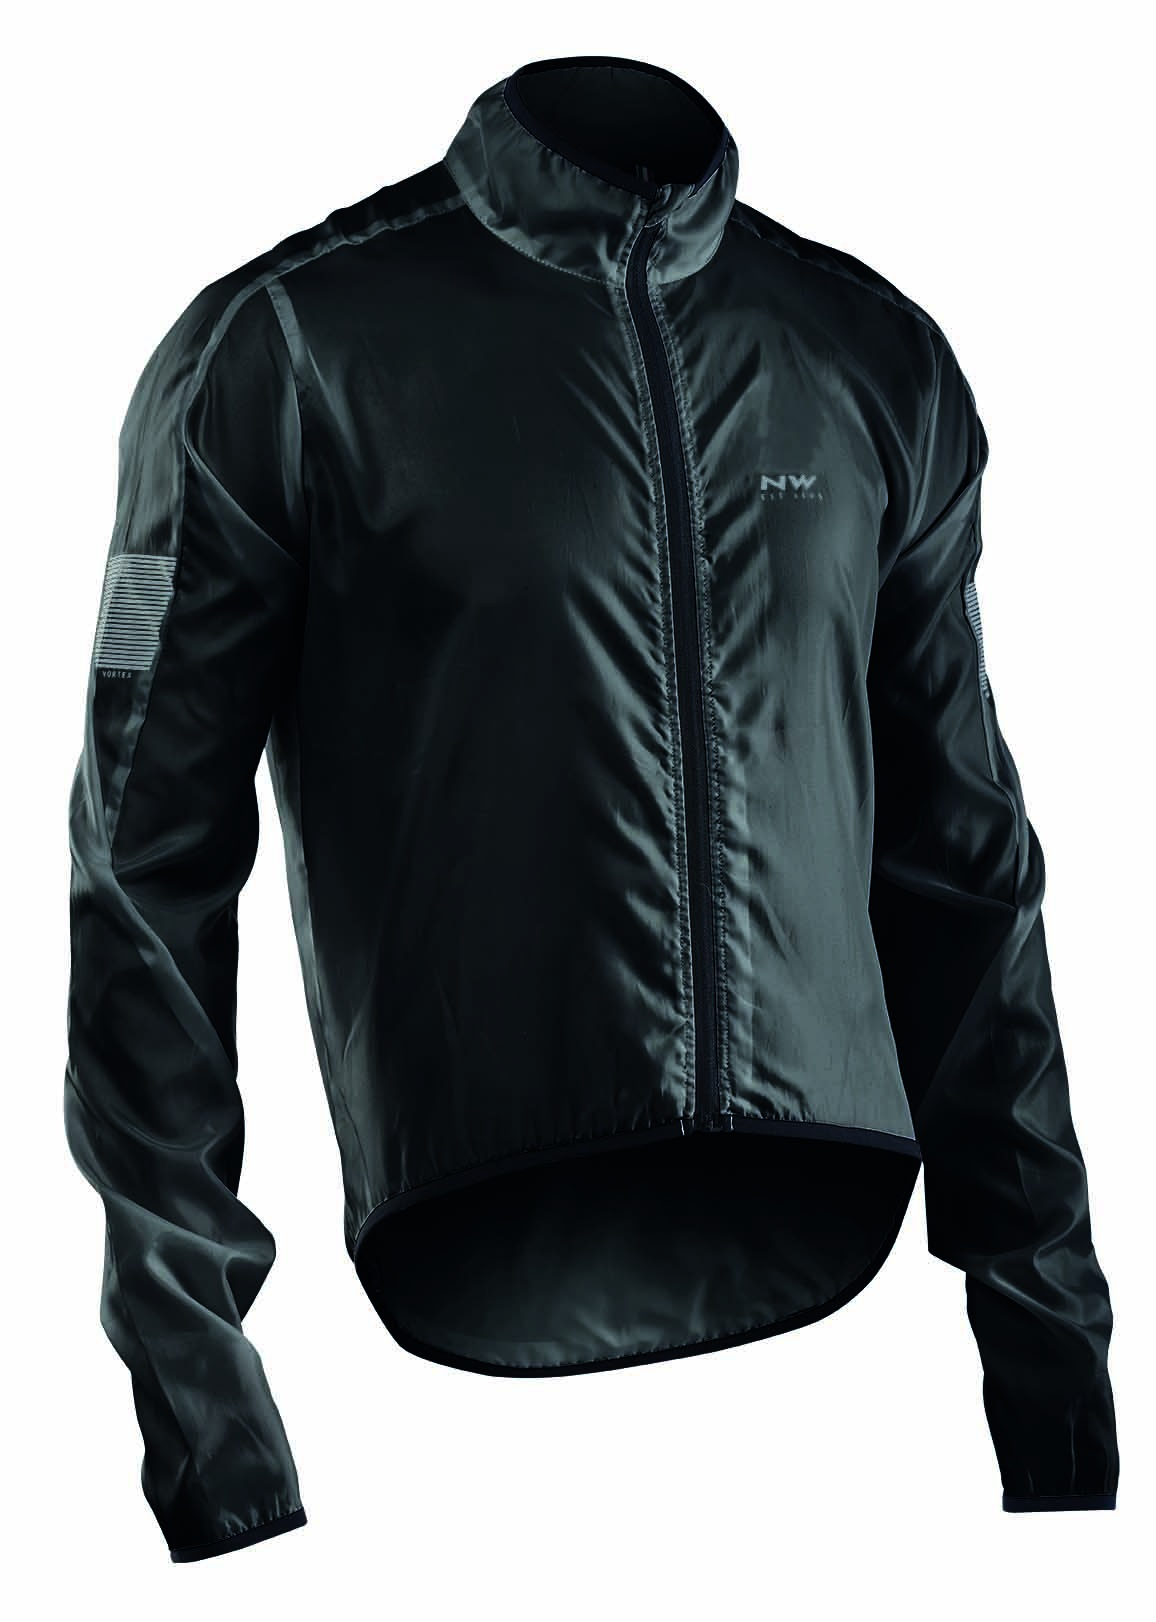 Giacca Antivento e Idrorepellente Ciclismo Northwave Vortex Jacket  BLACK